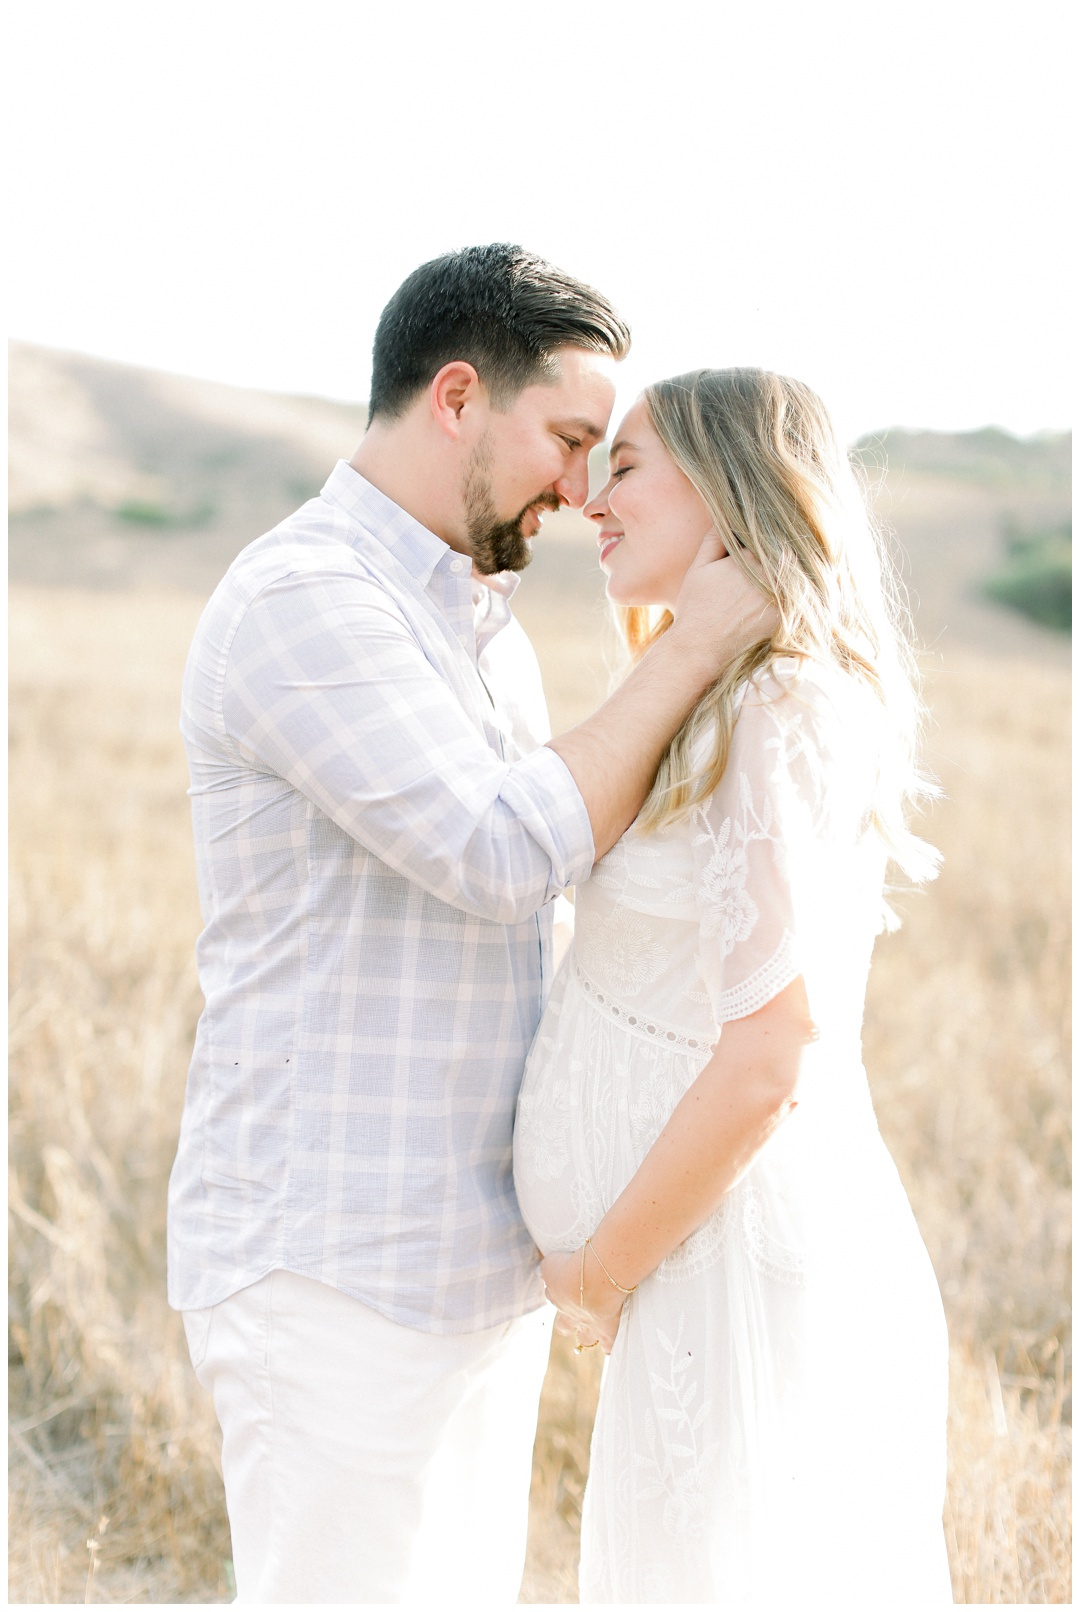 Newport_Beach_Maternity_Photographer_Newport_Beach_Maternity_Photography_Orange_County_Photography_Cori_Kleckner_Photography_Orange_County_Quail_Hill_Photography_The_Ritz_Carlton_Laguna_Niguel_Resort_ Maternity_Session__1807.jpg